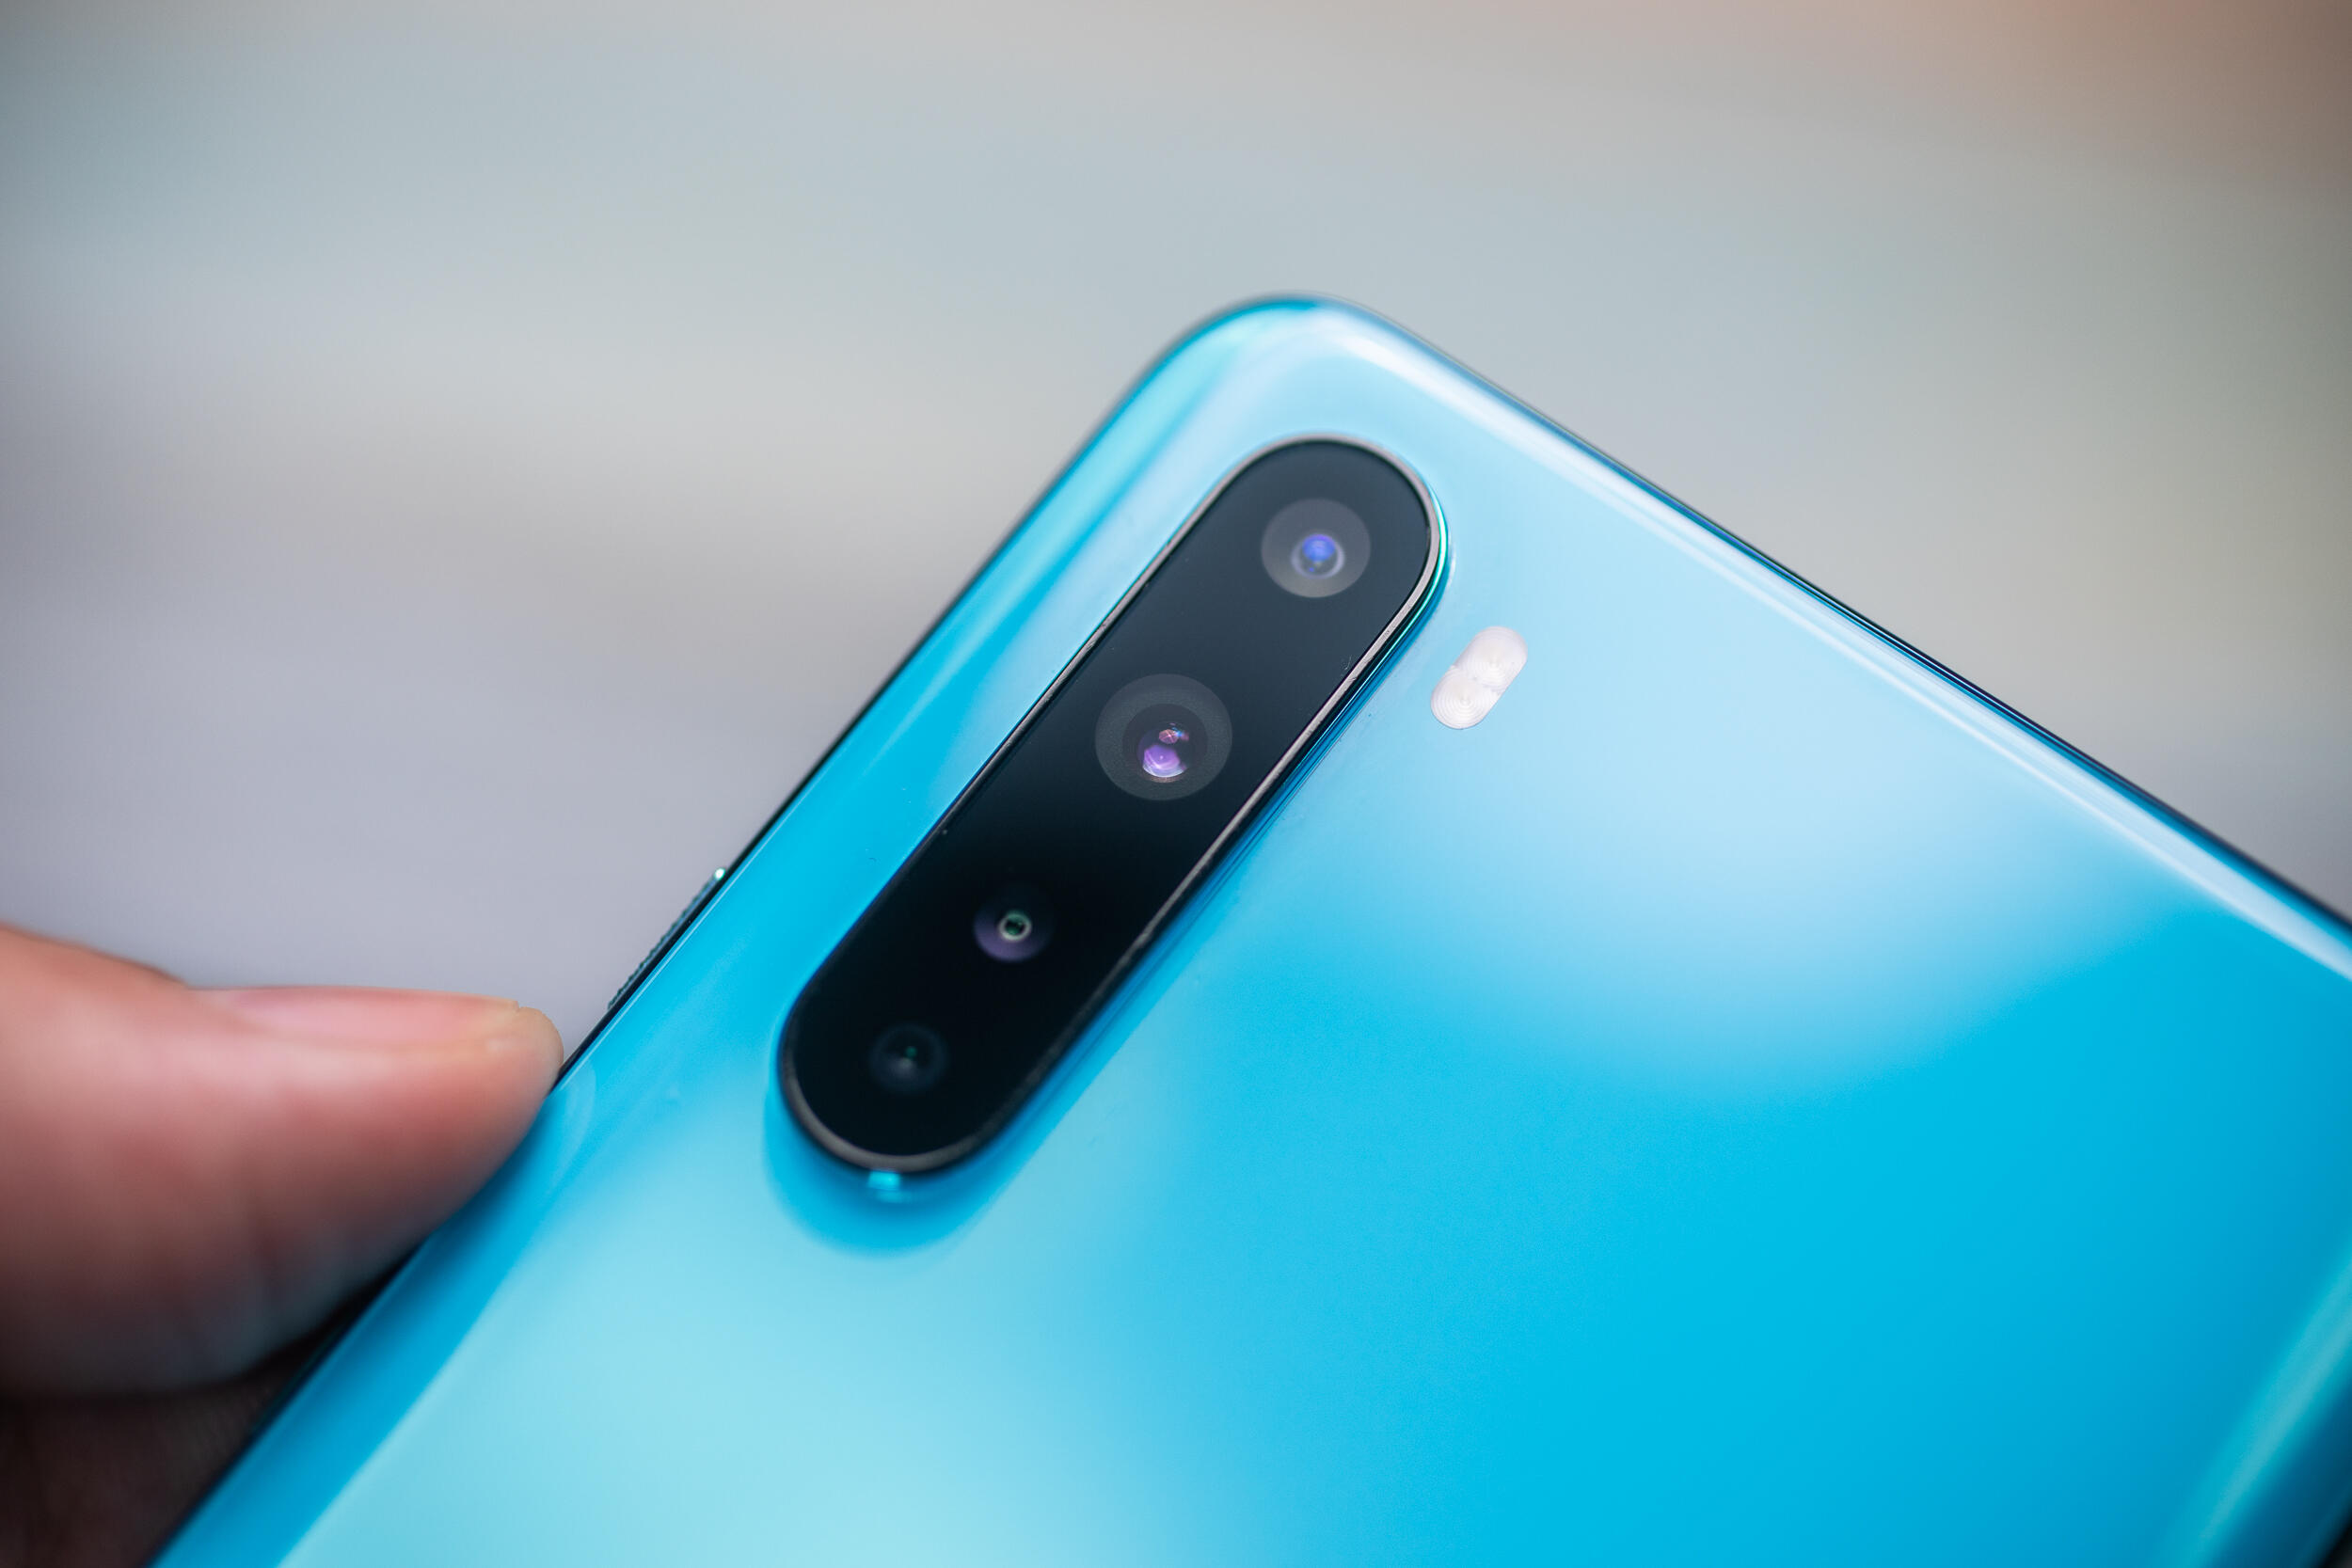 OnePlus Nord vs. OnePlus 8 vs. OnePlus 8 Pro: All the specs and how they compare